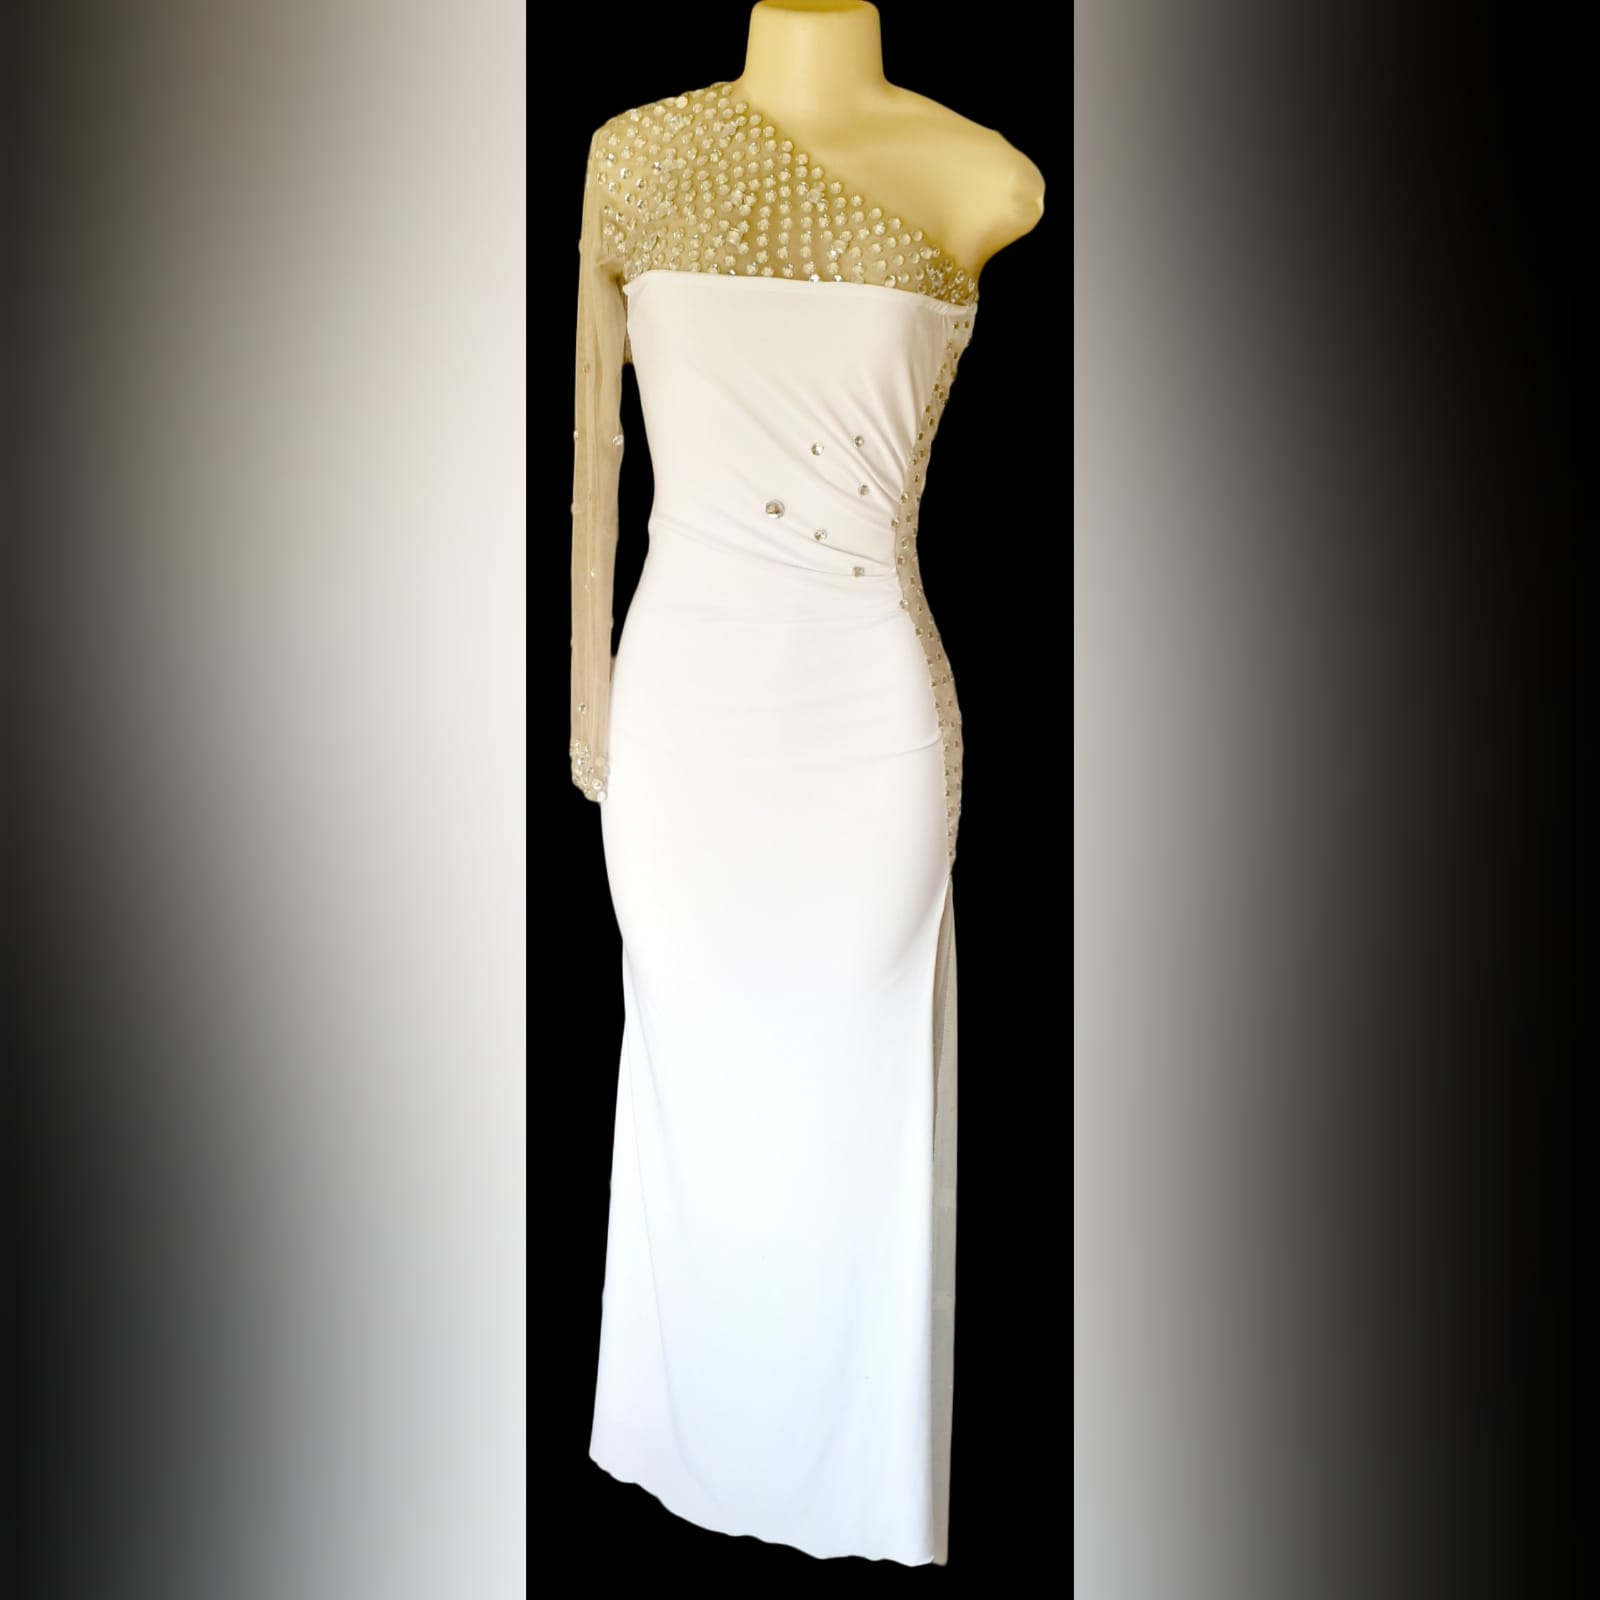 White and silver long fitted new years party dress 5 white and silver long fitted new years party dress. With an angled neckline and one sleeve detailed with silver beads. With a sheer side panel with beads creating a slit.